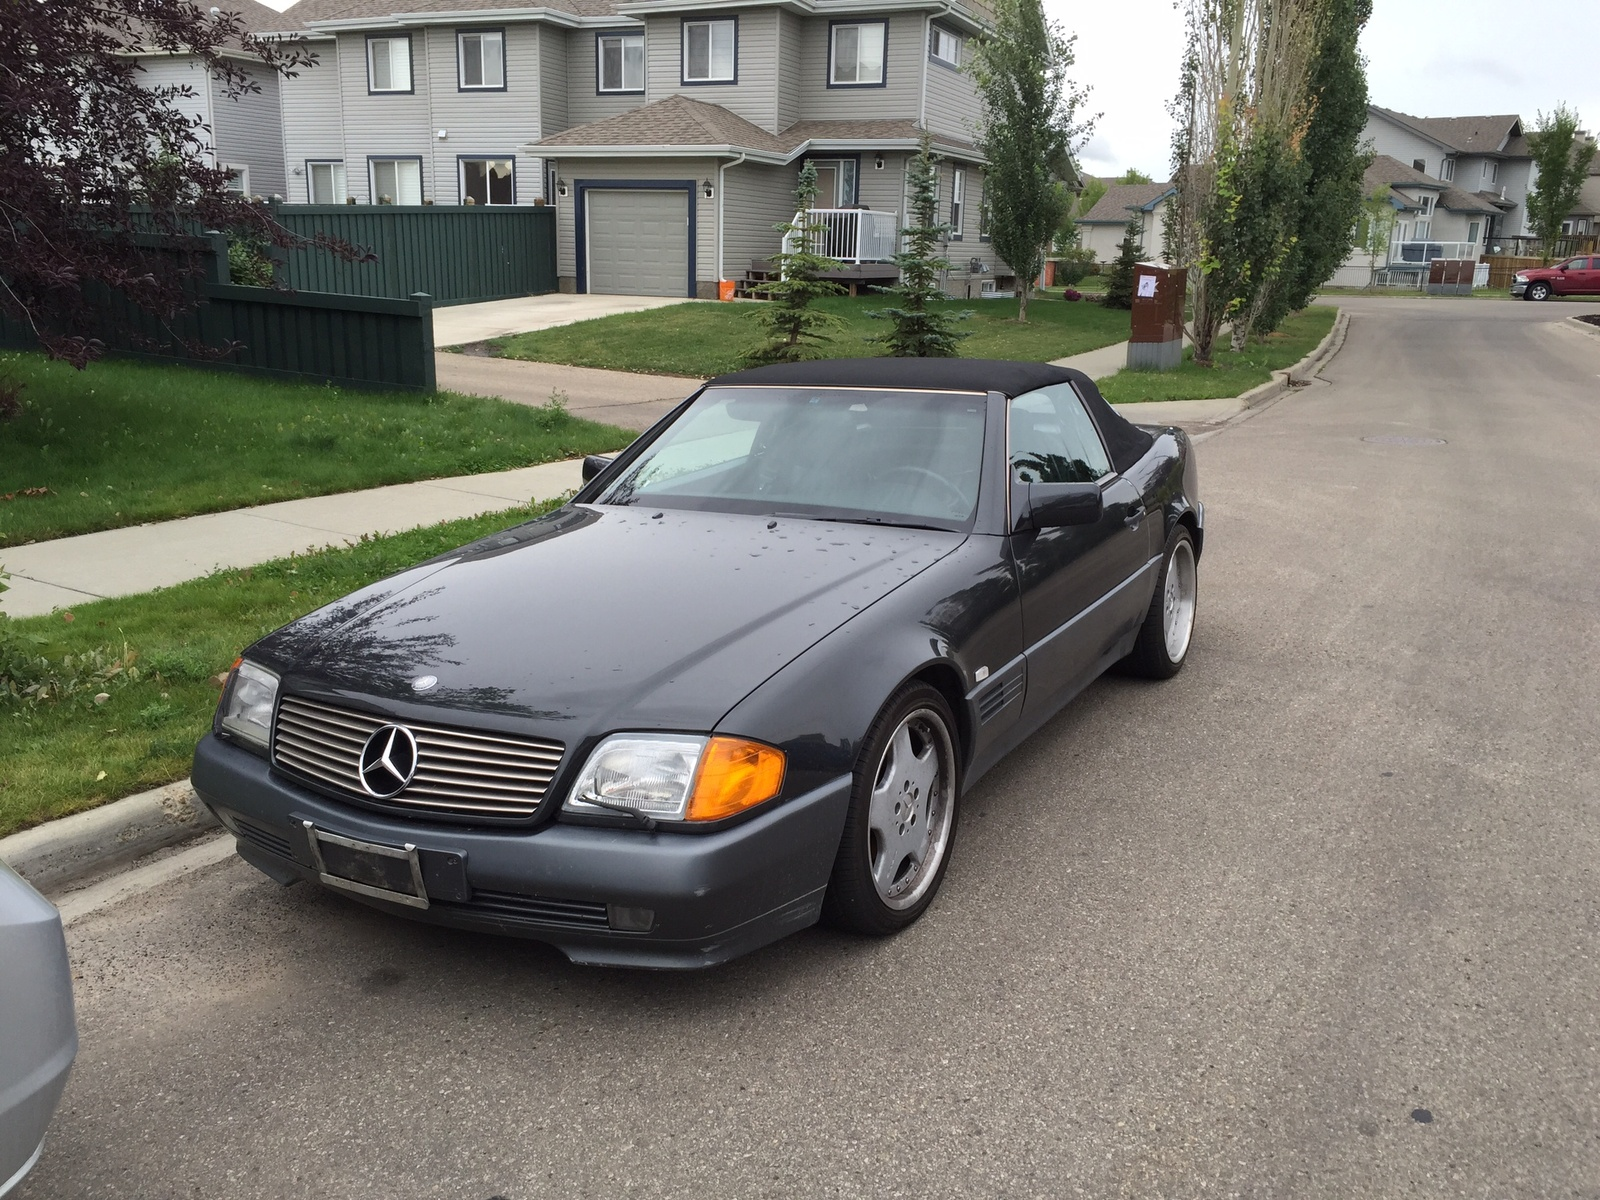 mercedes benz sl class questions got a 1991 500 sl and i can 39 t find a vin plate on it where. Black Bedroom Furniture Sets. Home Design Ideas